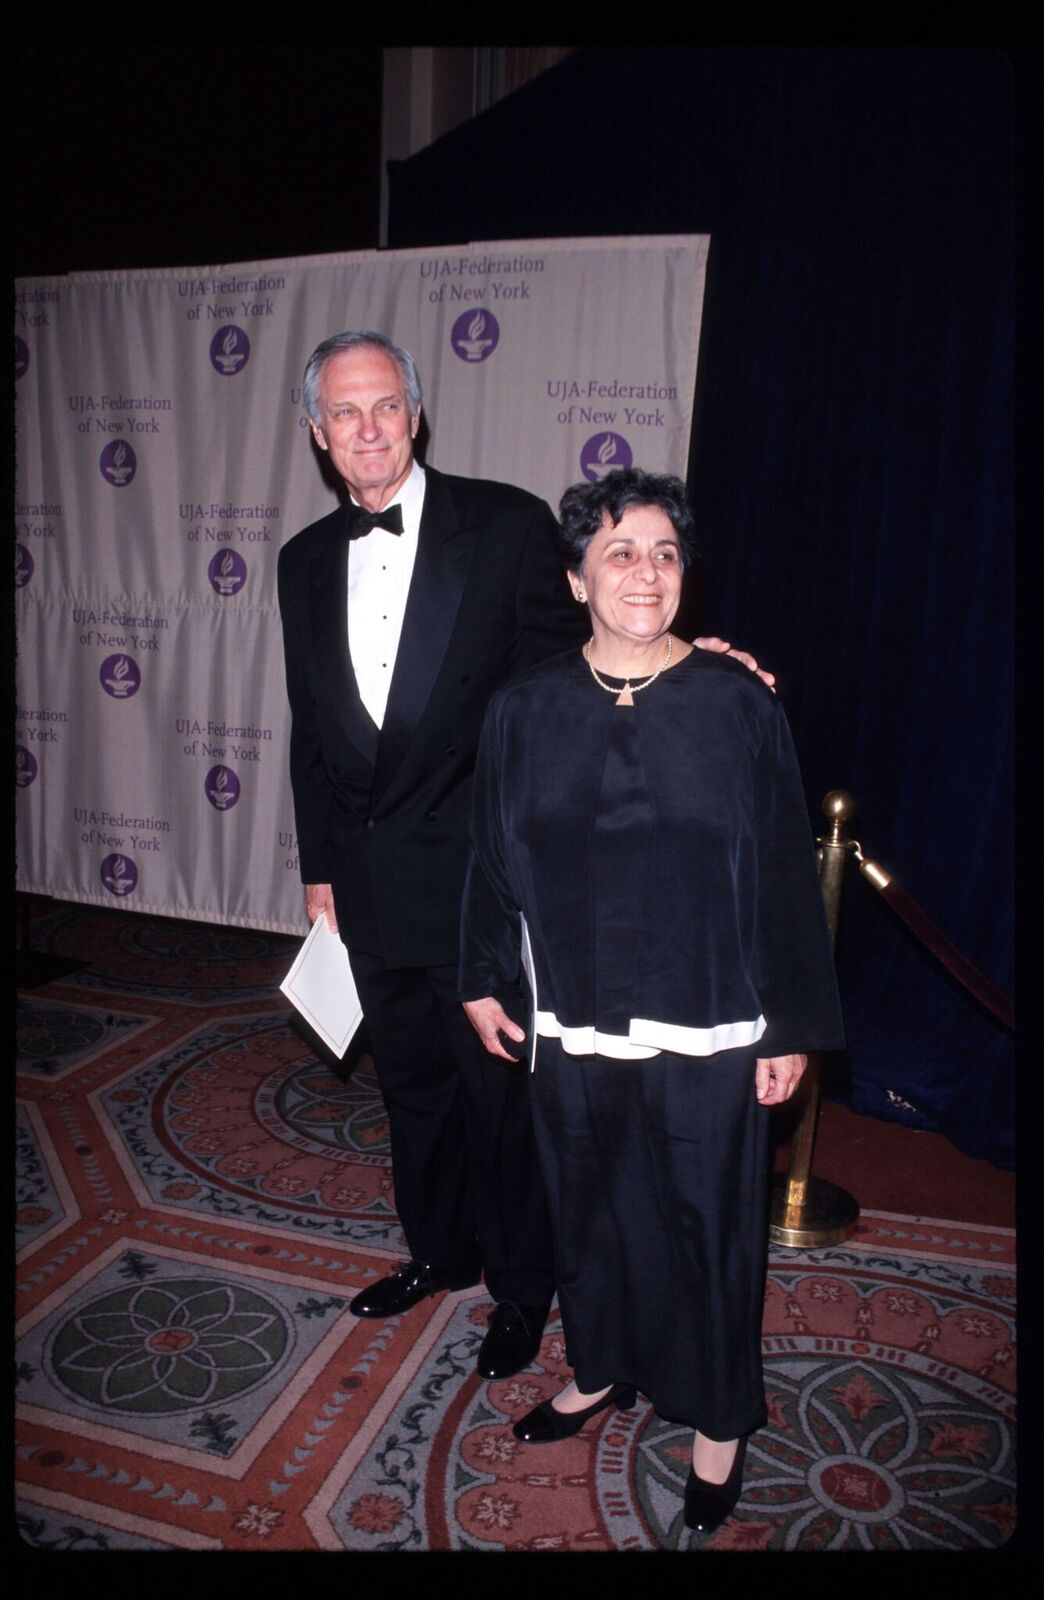 Alan Alda attends awards ceremony with his wife Arlene May 11, 1999 in New York City. | Source: Getty Images